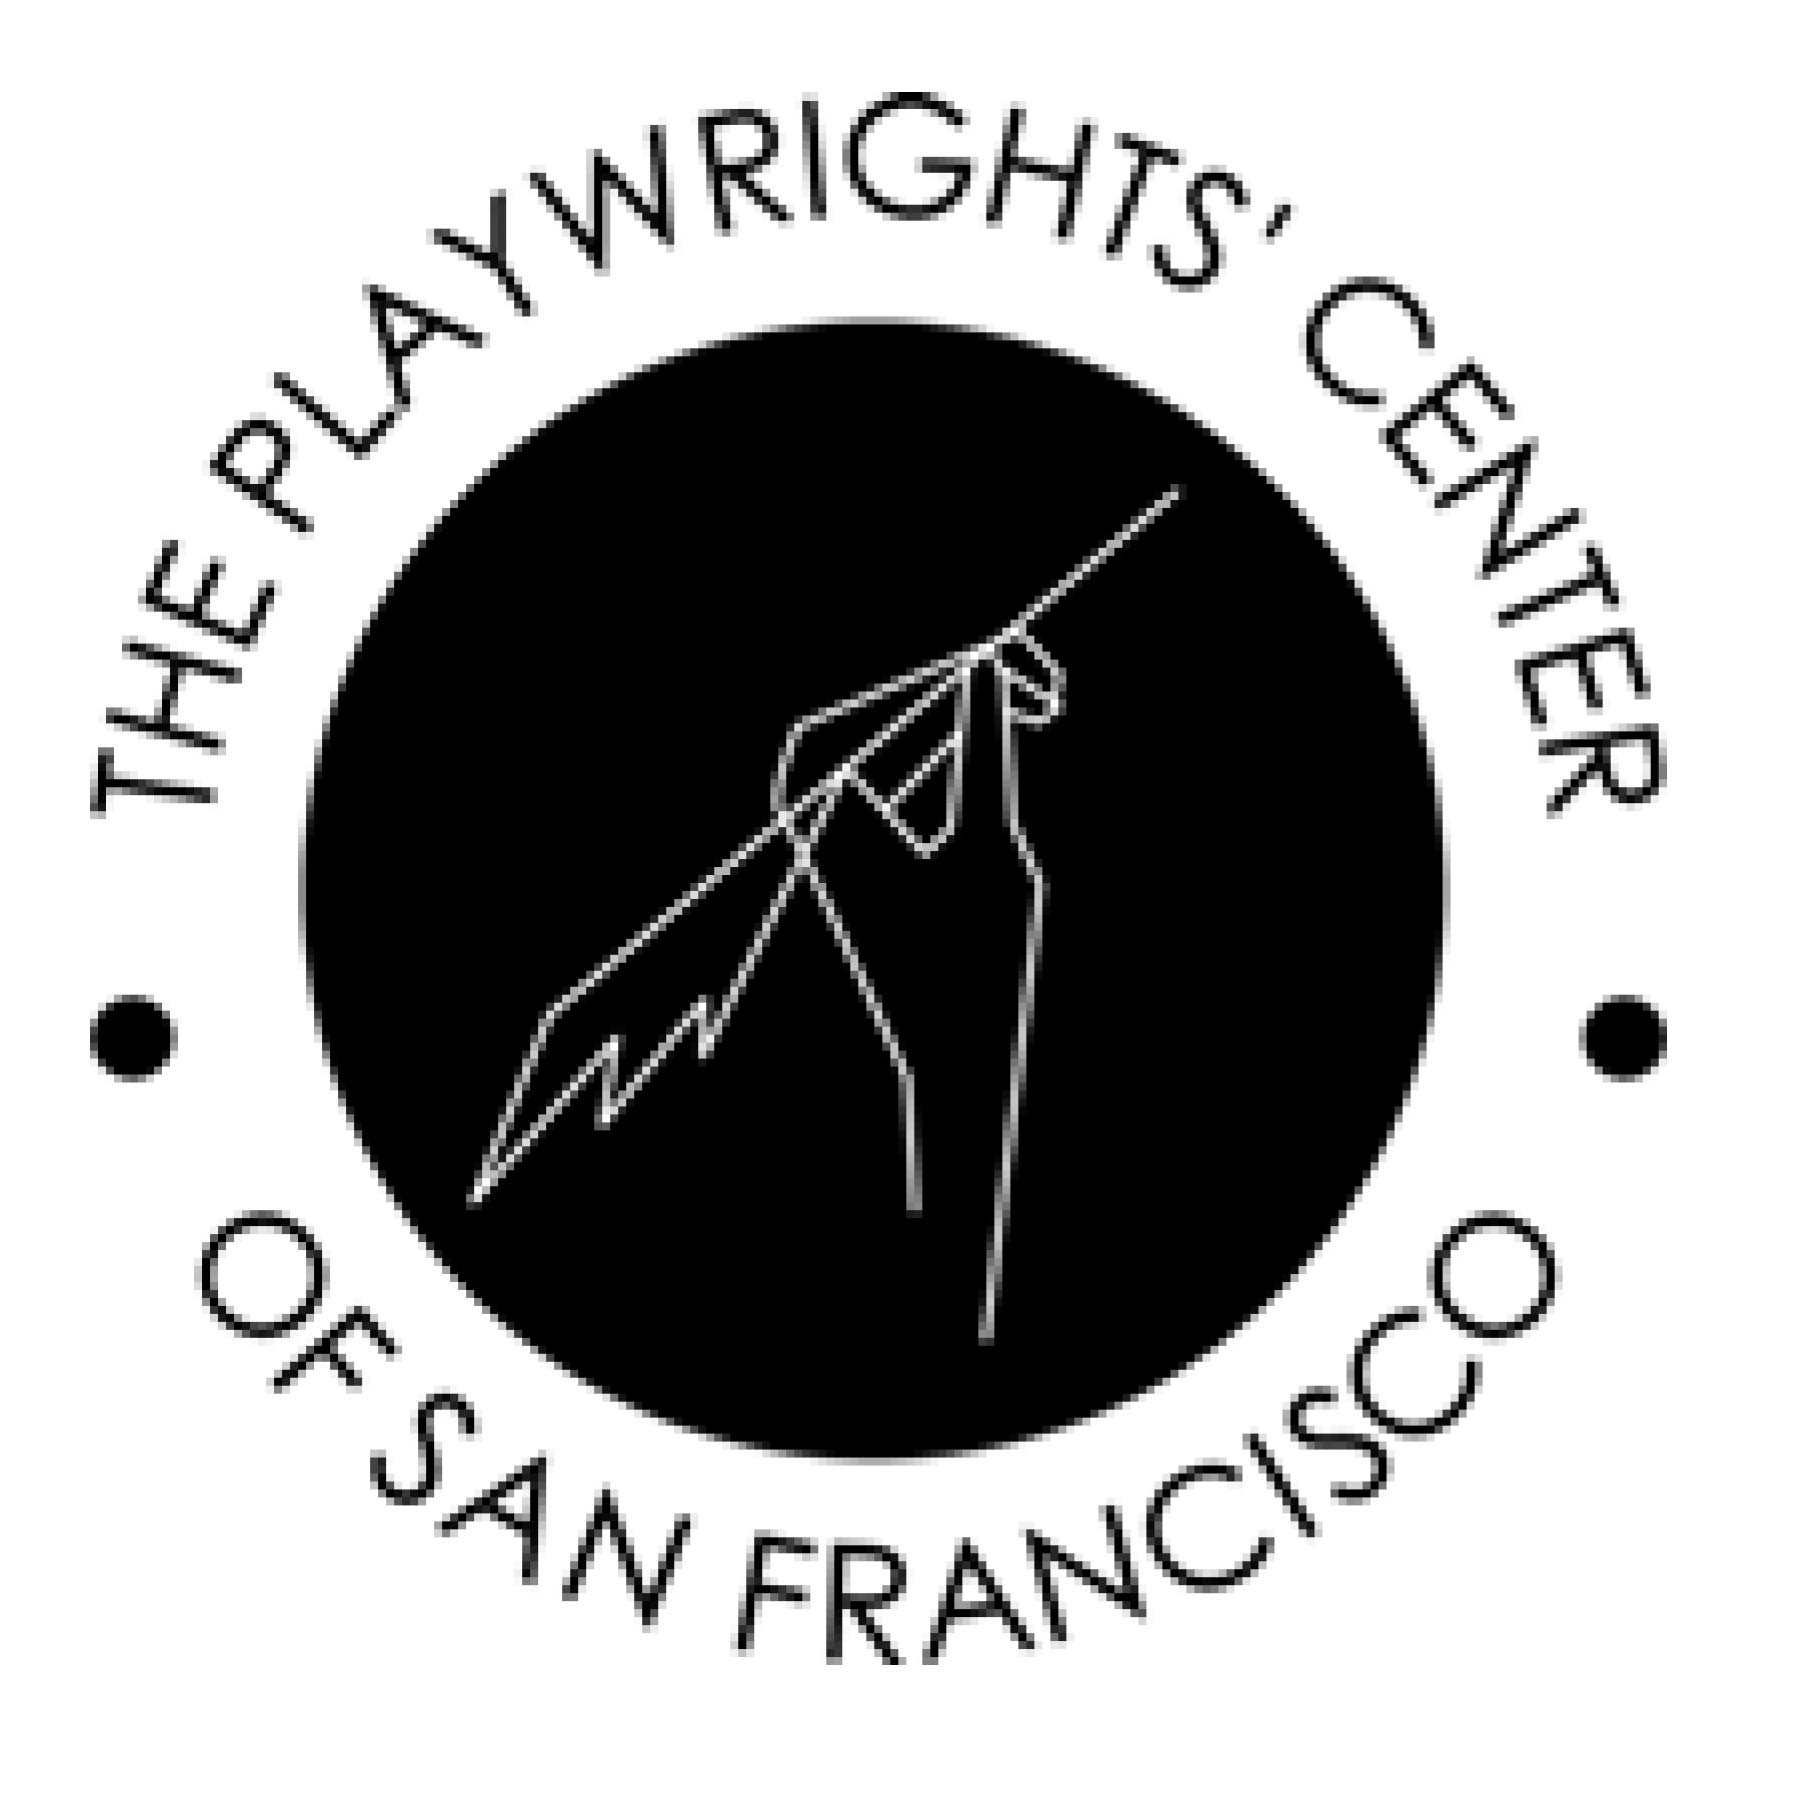 Playwrights Center of SF logo